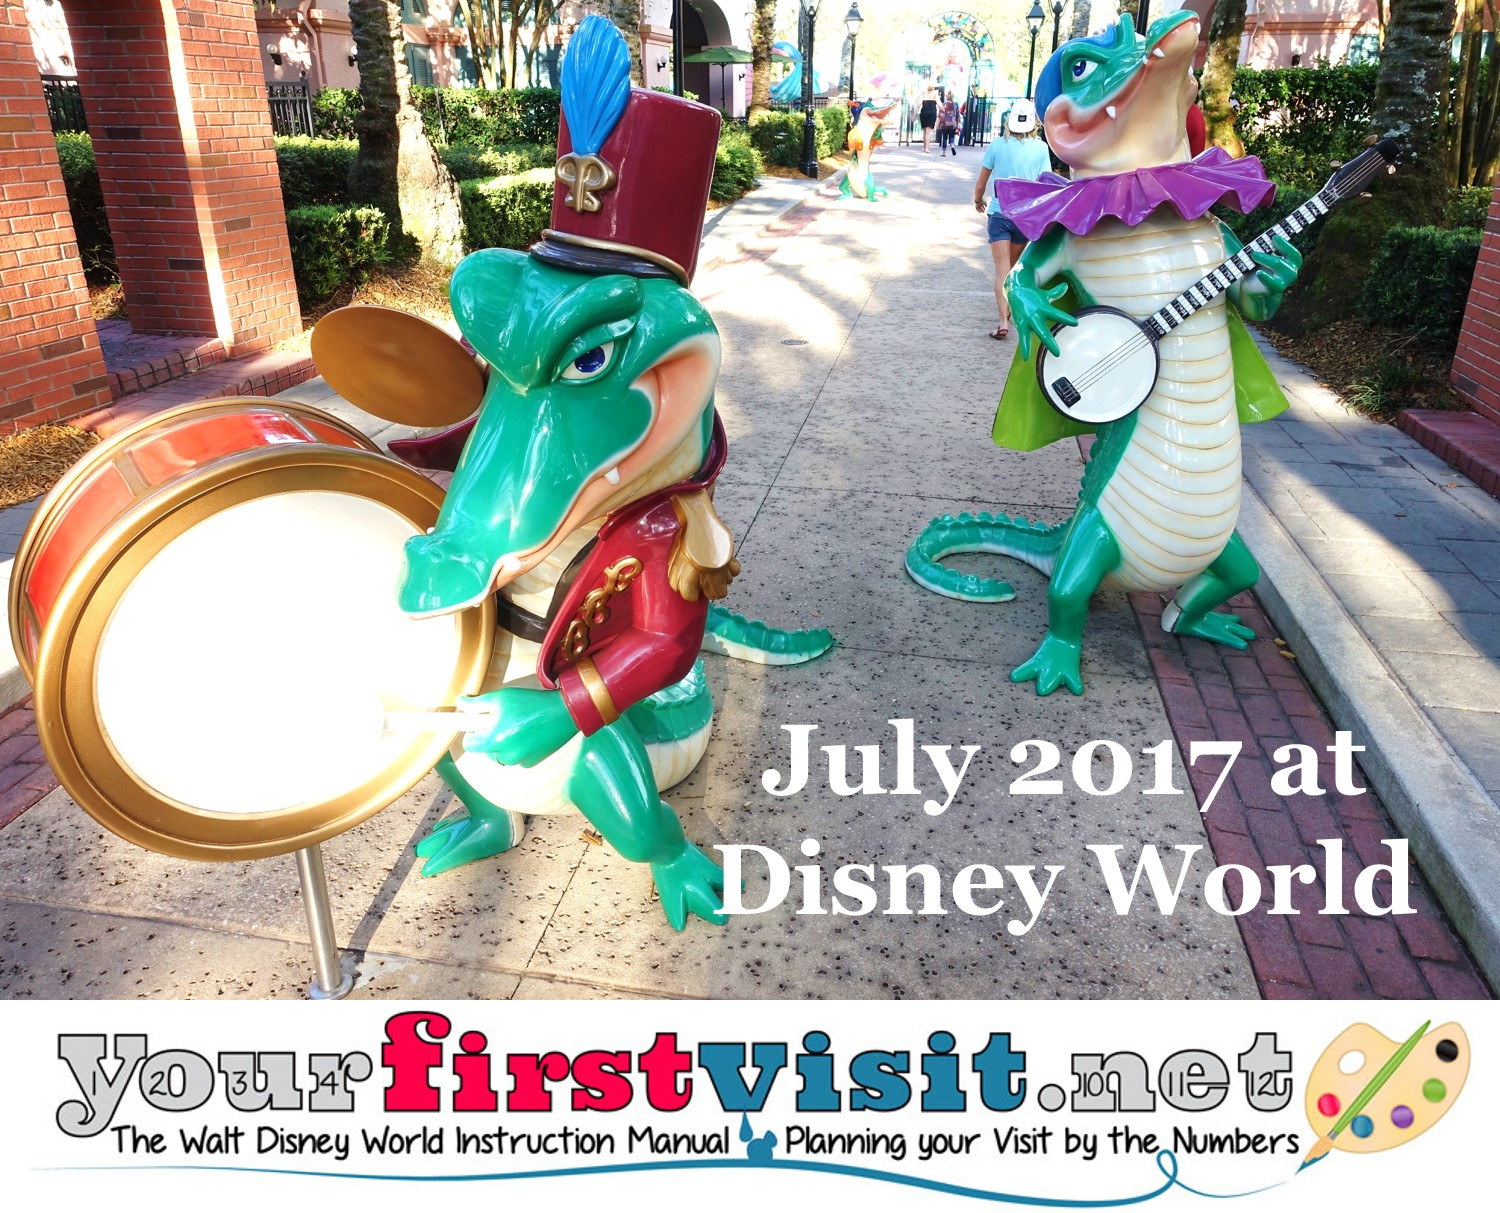 july-2017-at-disney-world-from-yourfirstvisit-net